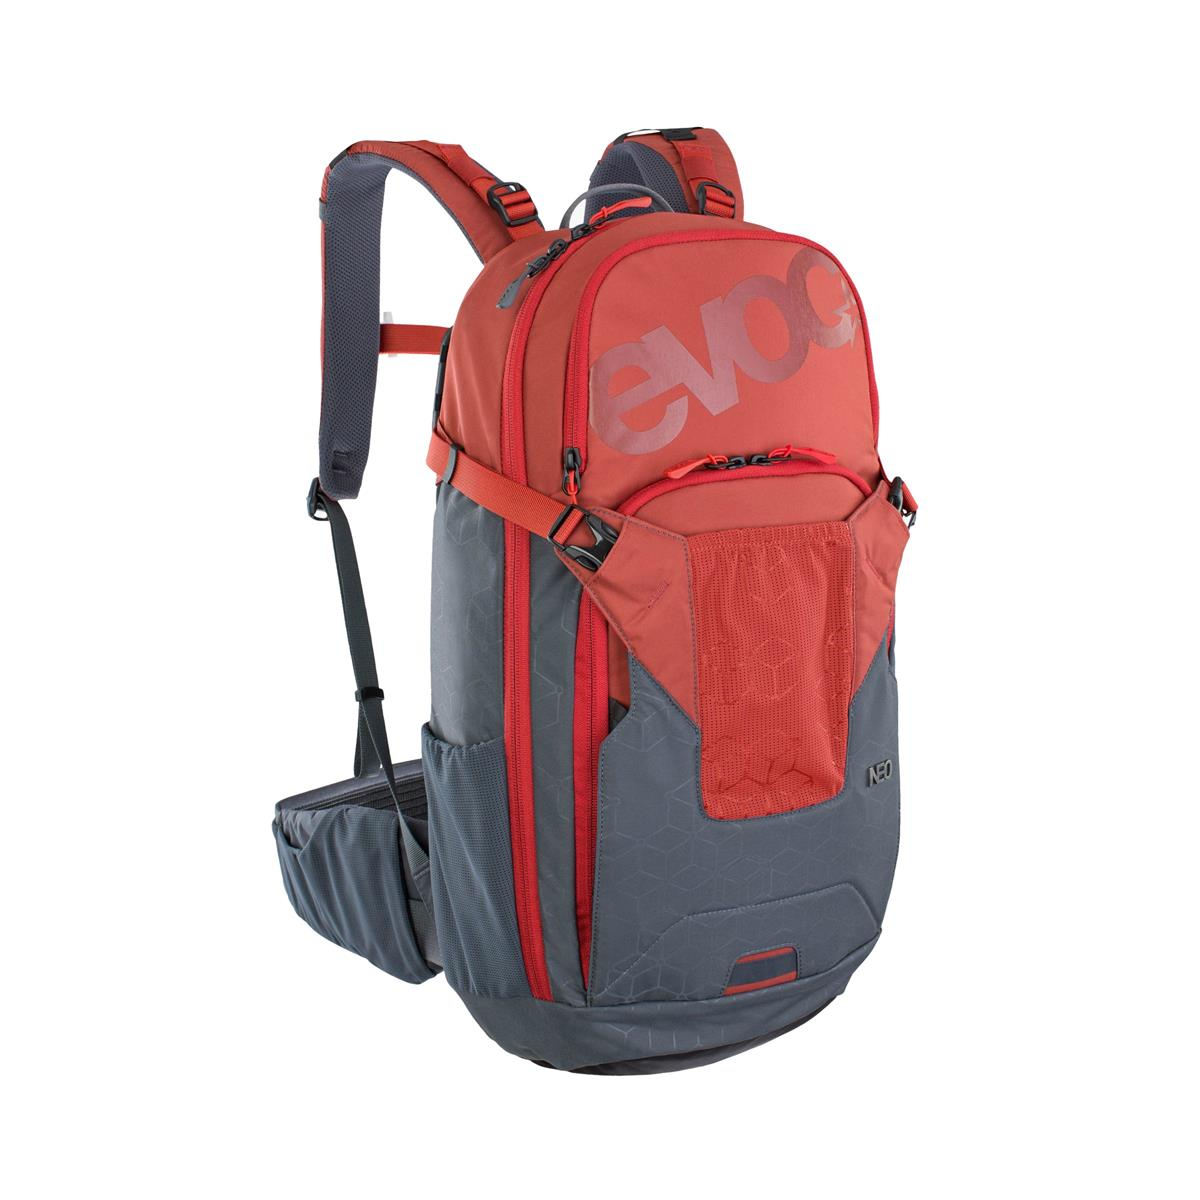 Backpack Neo 16L Grey/Red S/M